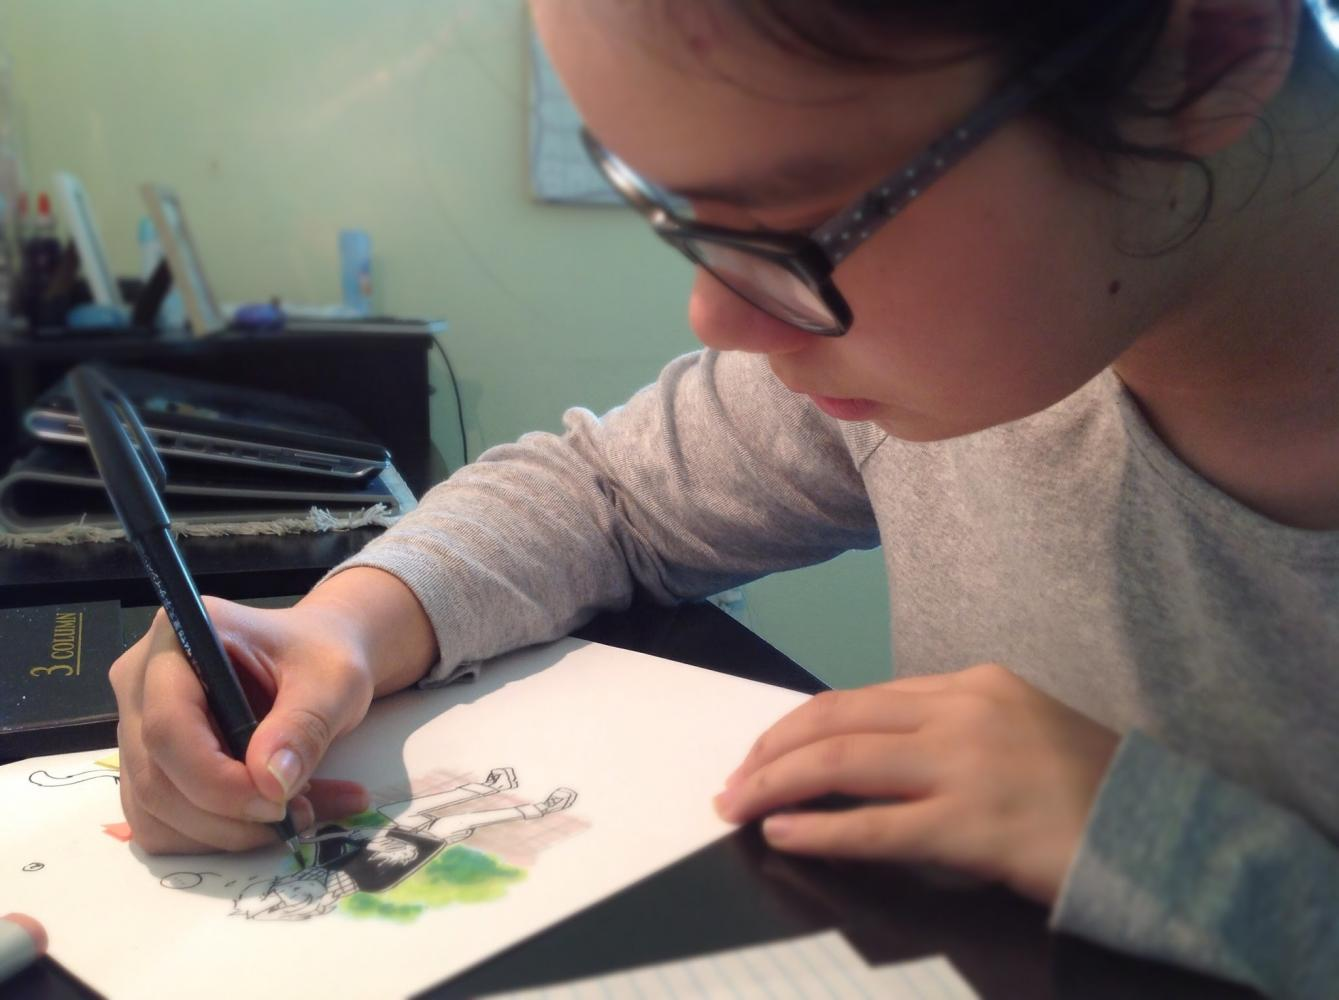 Sophomore+Lynn+Joustra+sits+at+her+desk+sketching+characters+from+her+comic.+Joustra%2C+who+likes+to+draw+out+her+problems%2C+enjoys+having+time+to+herself+to+evaluate+situations.%0A